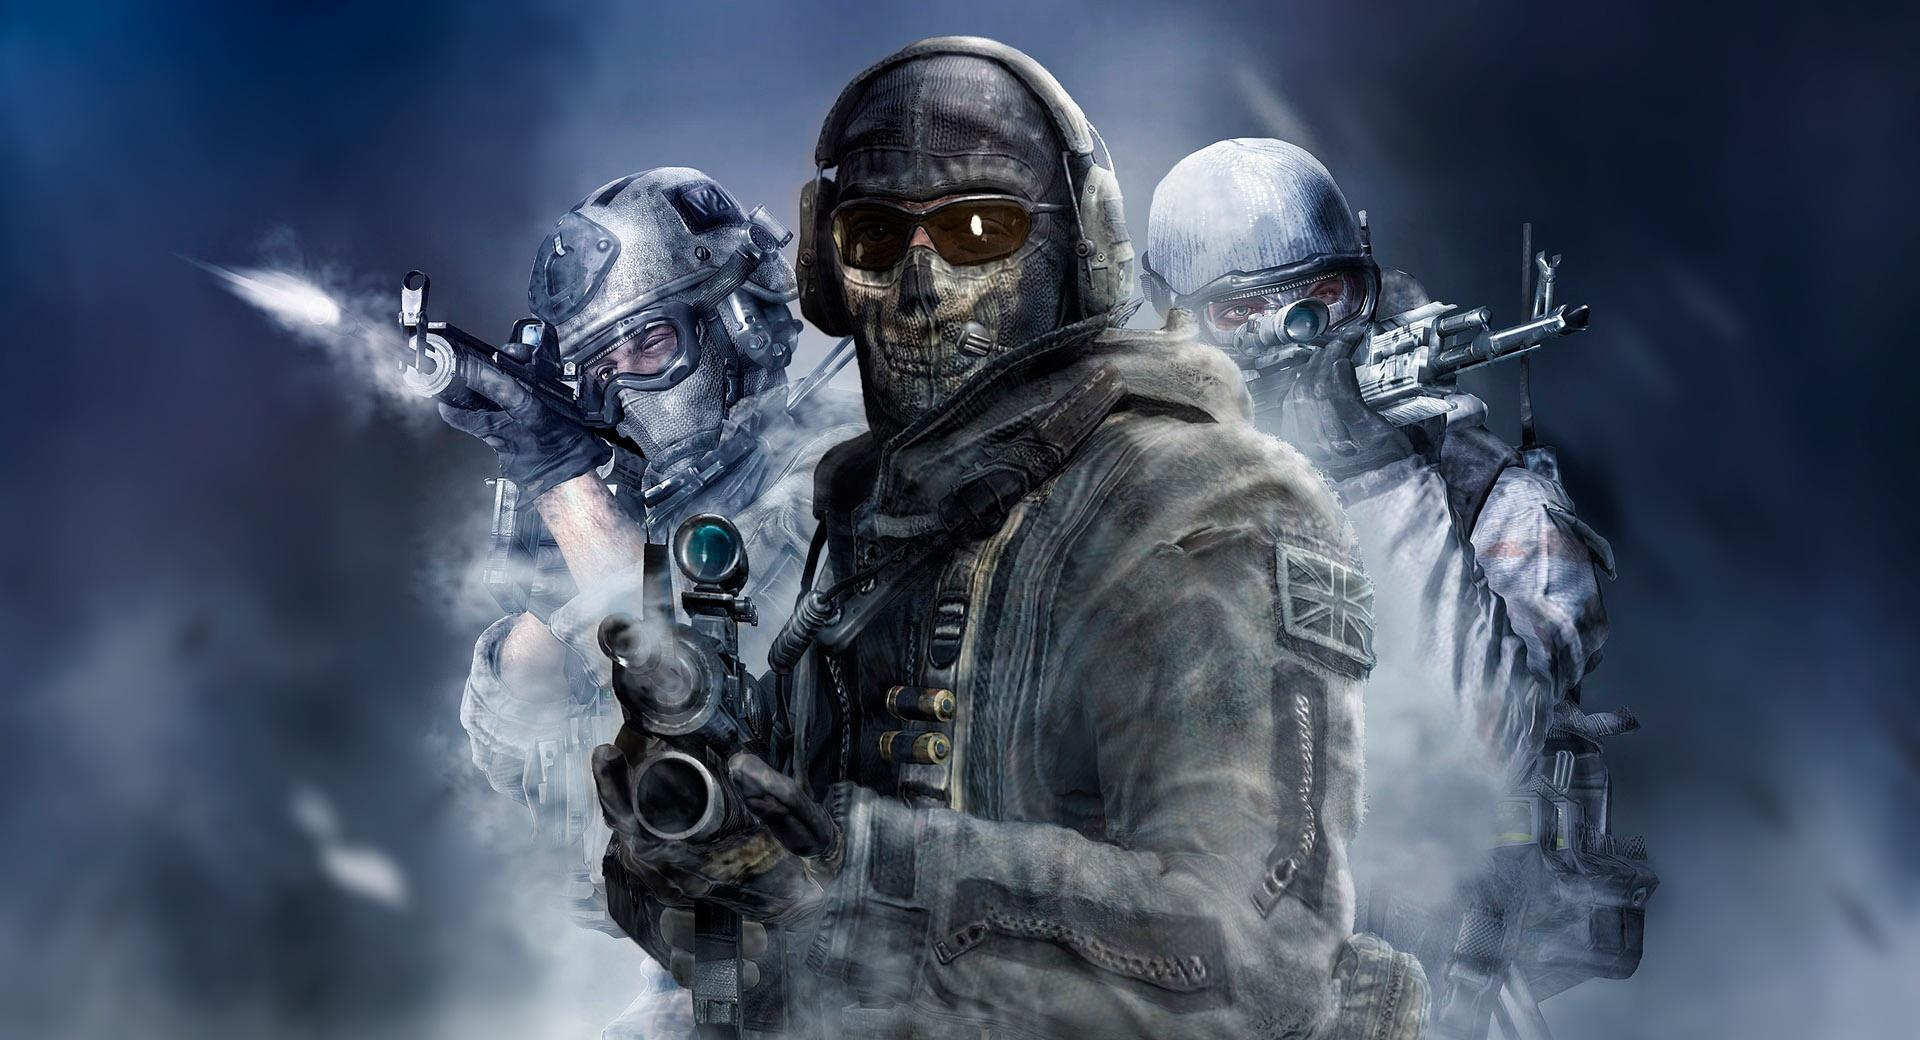 Call of Duty - Modern Warfare wallpapers HD quality